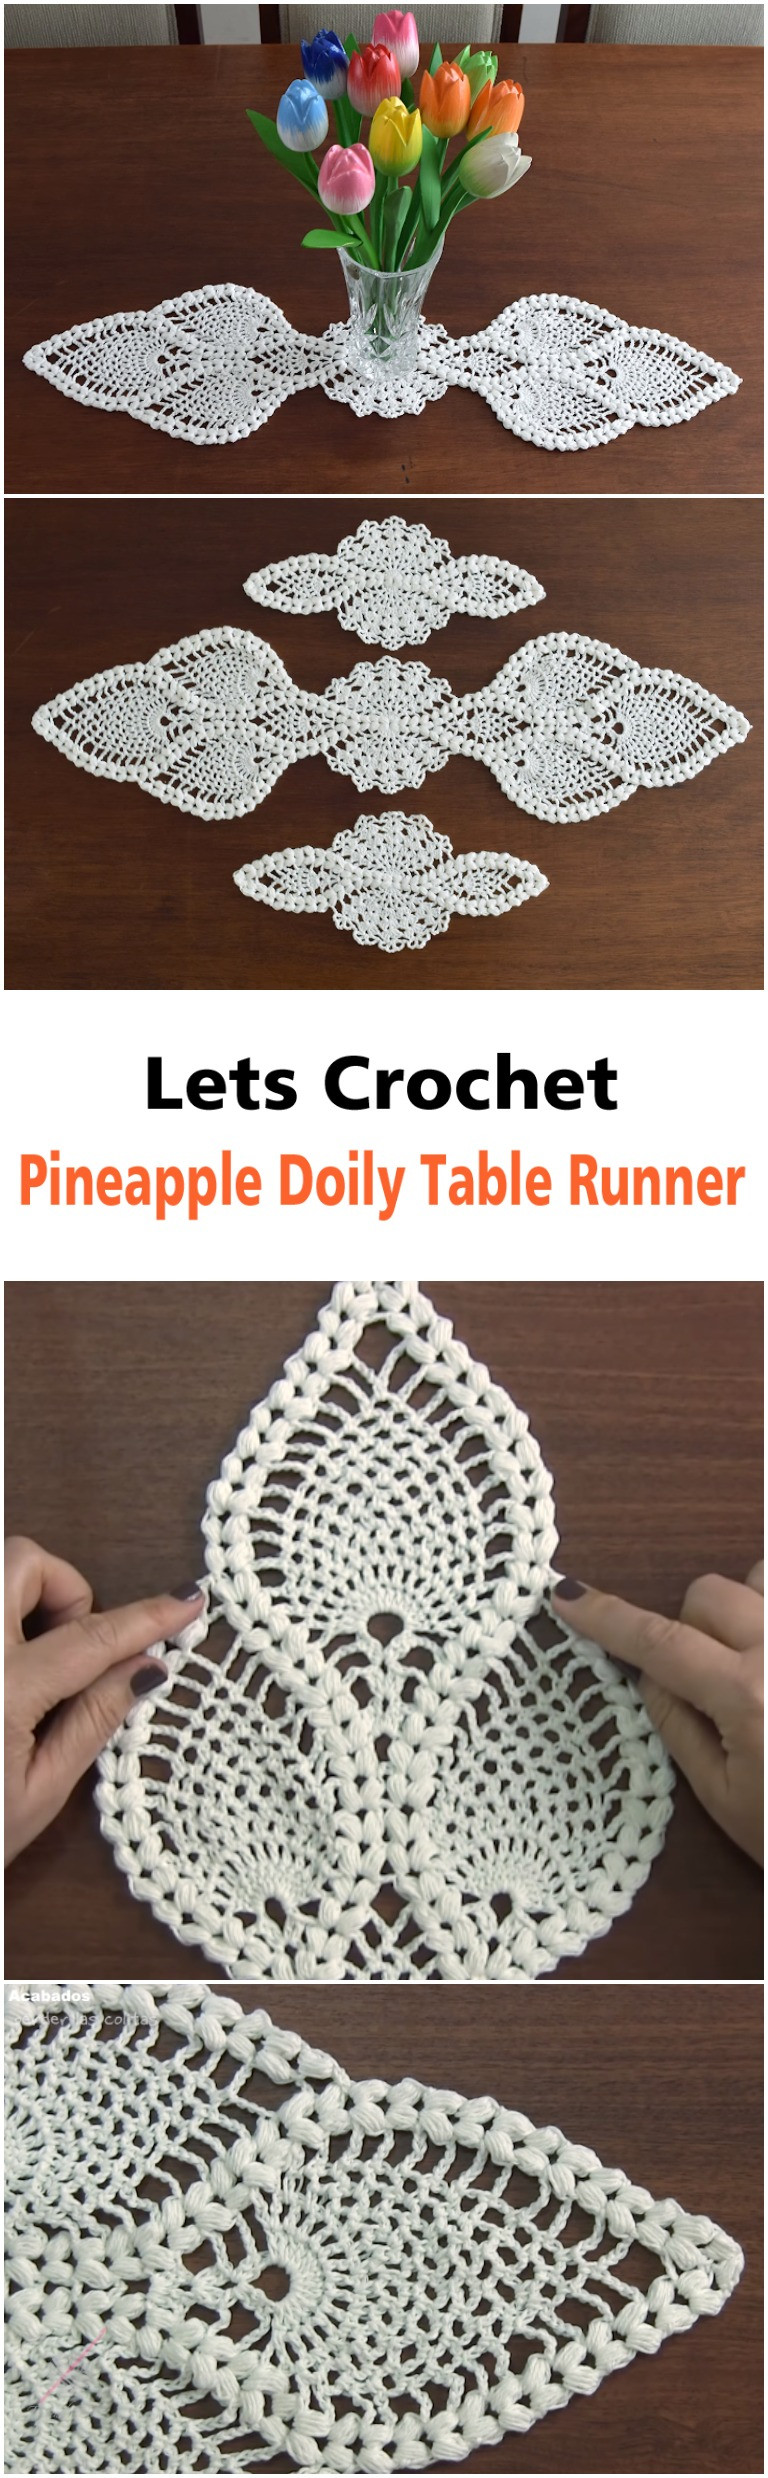 Crochet Pineapple Doily Table Runner ilove crochet